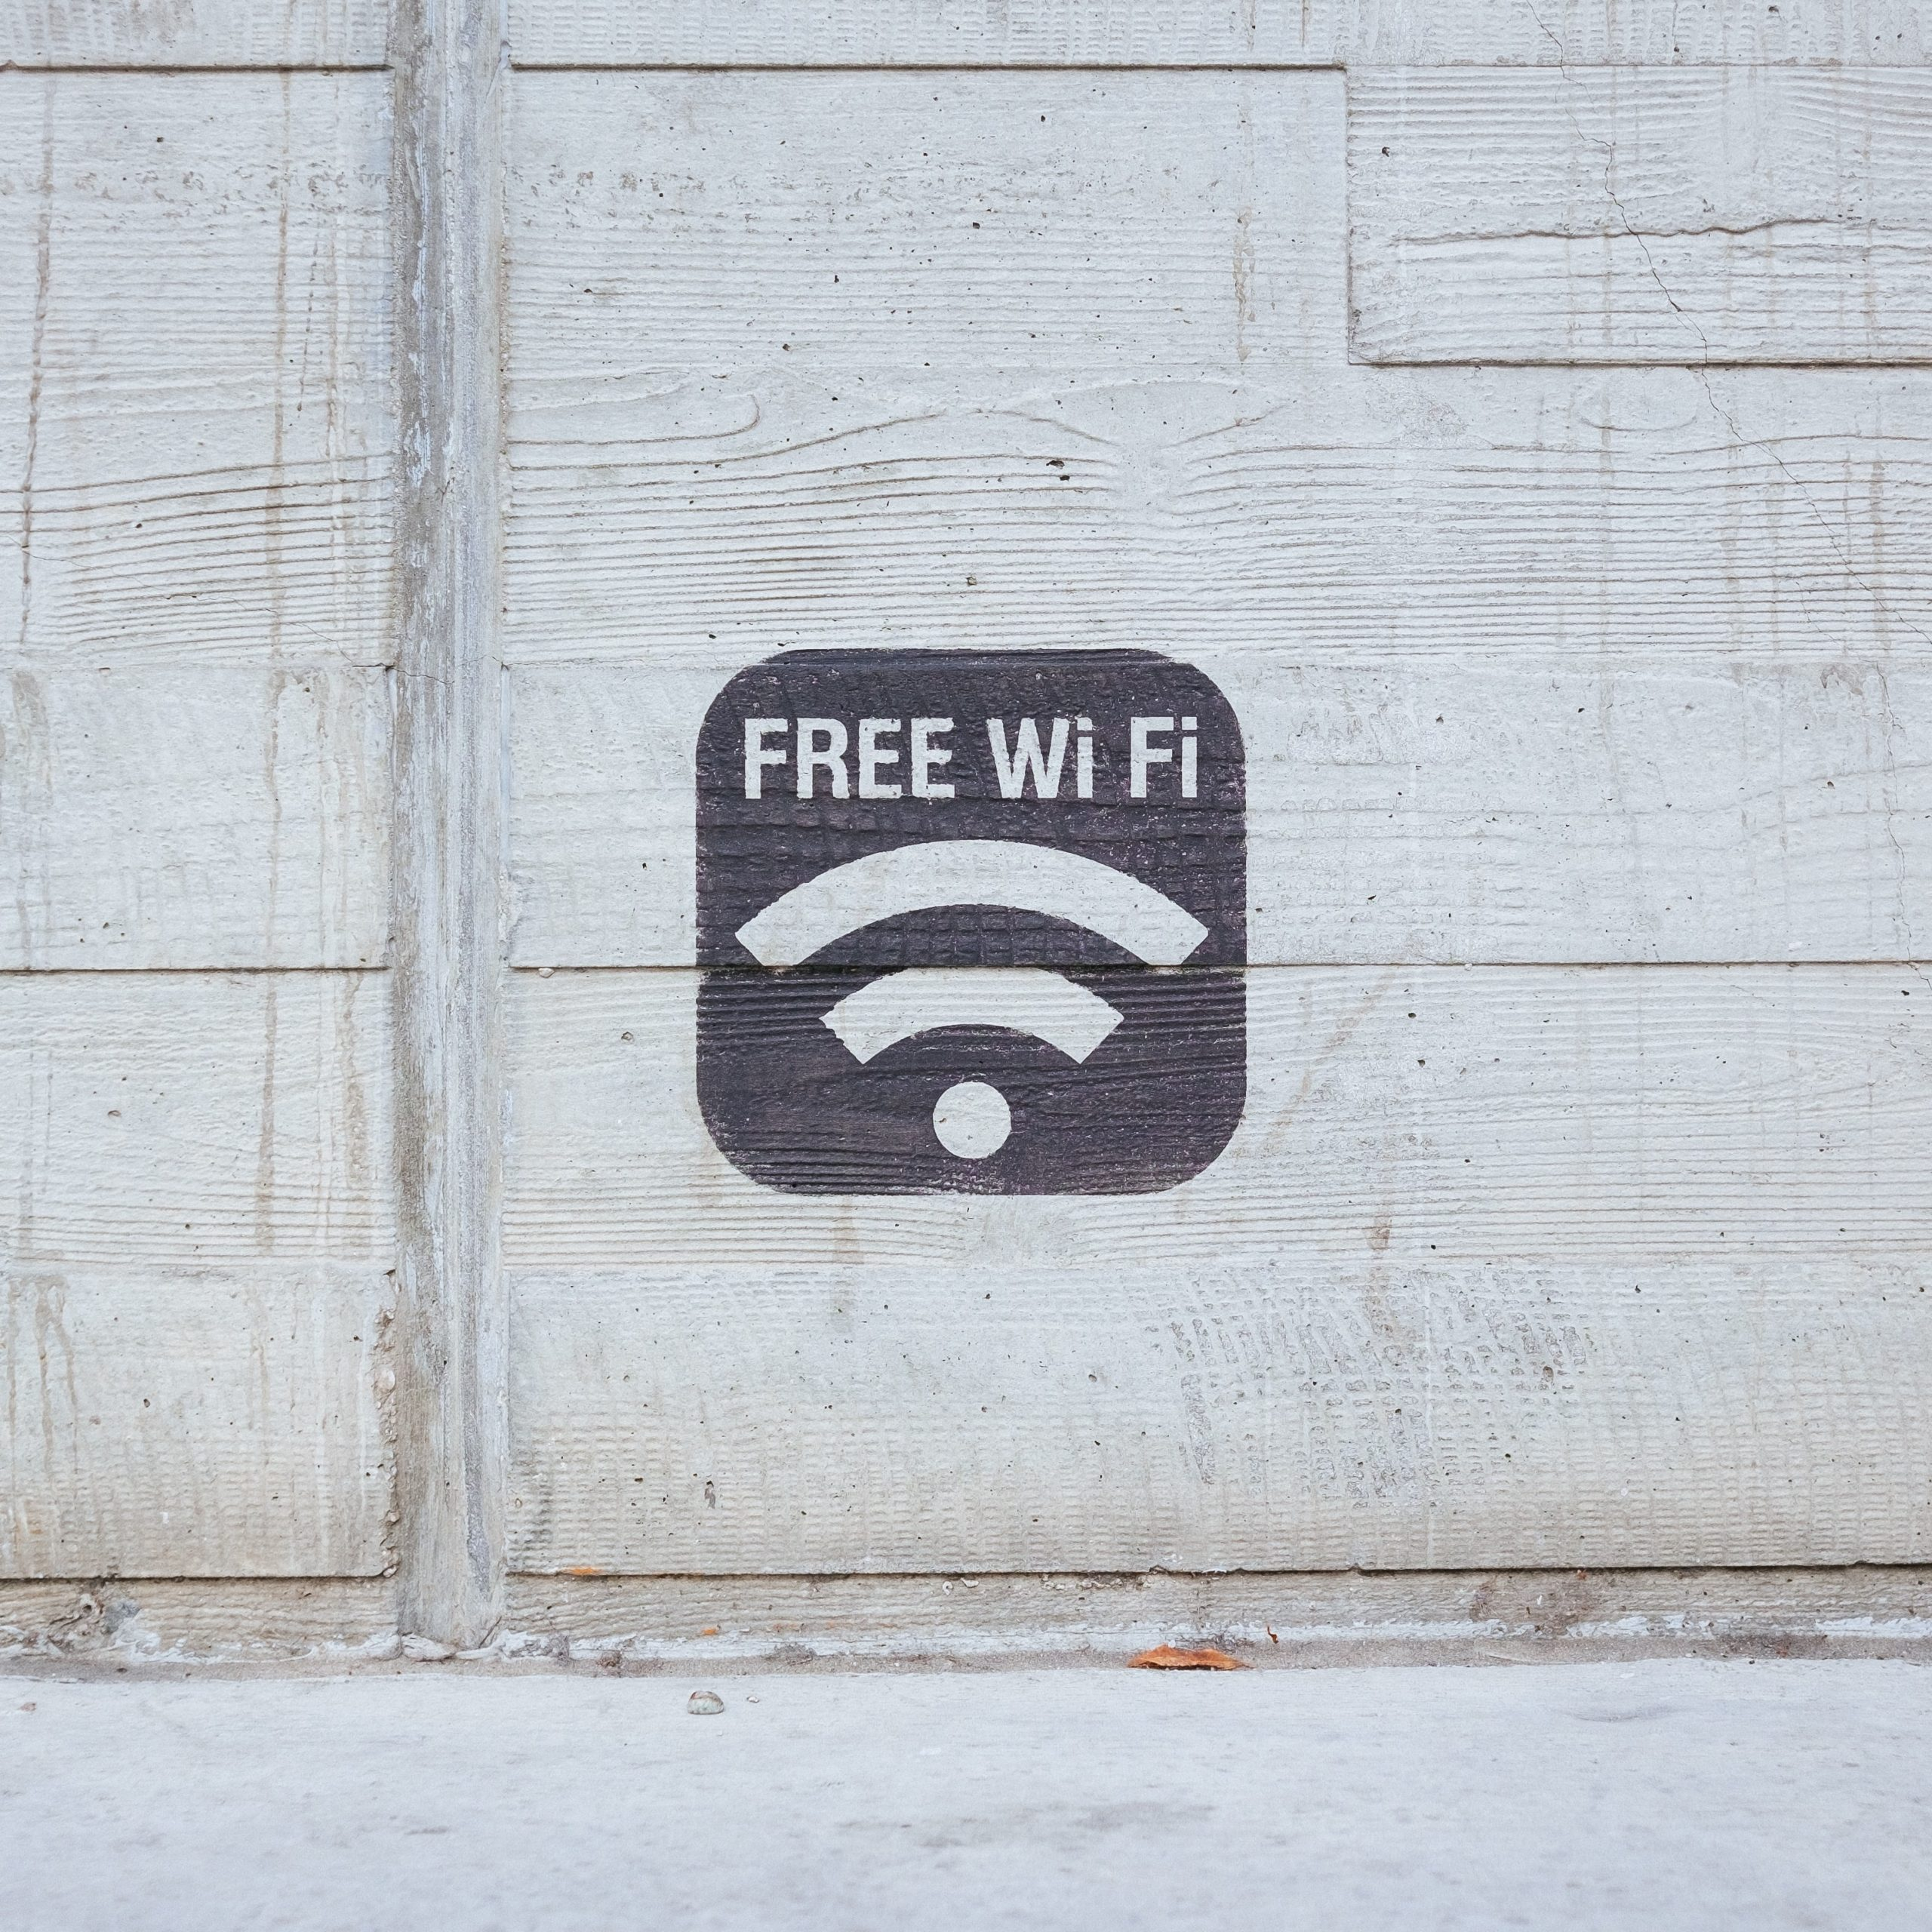 Wifi for guests isn't just for guests